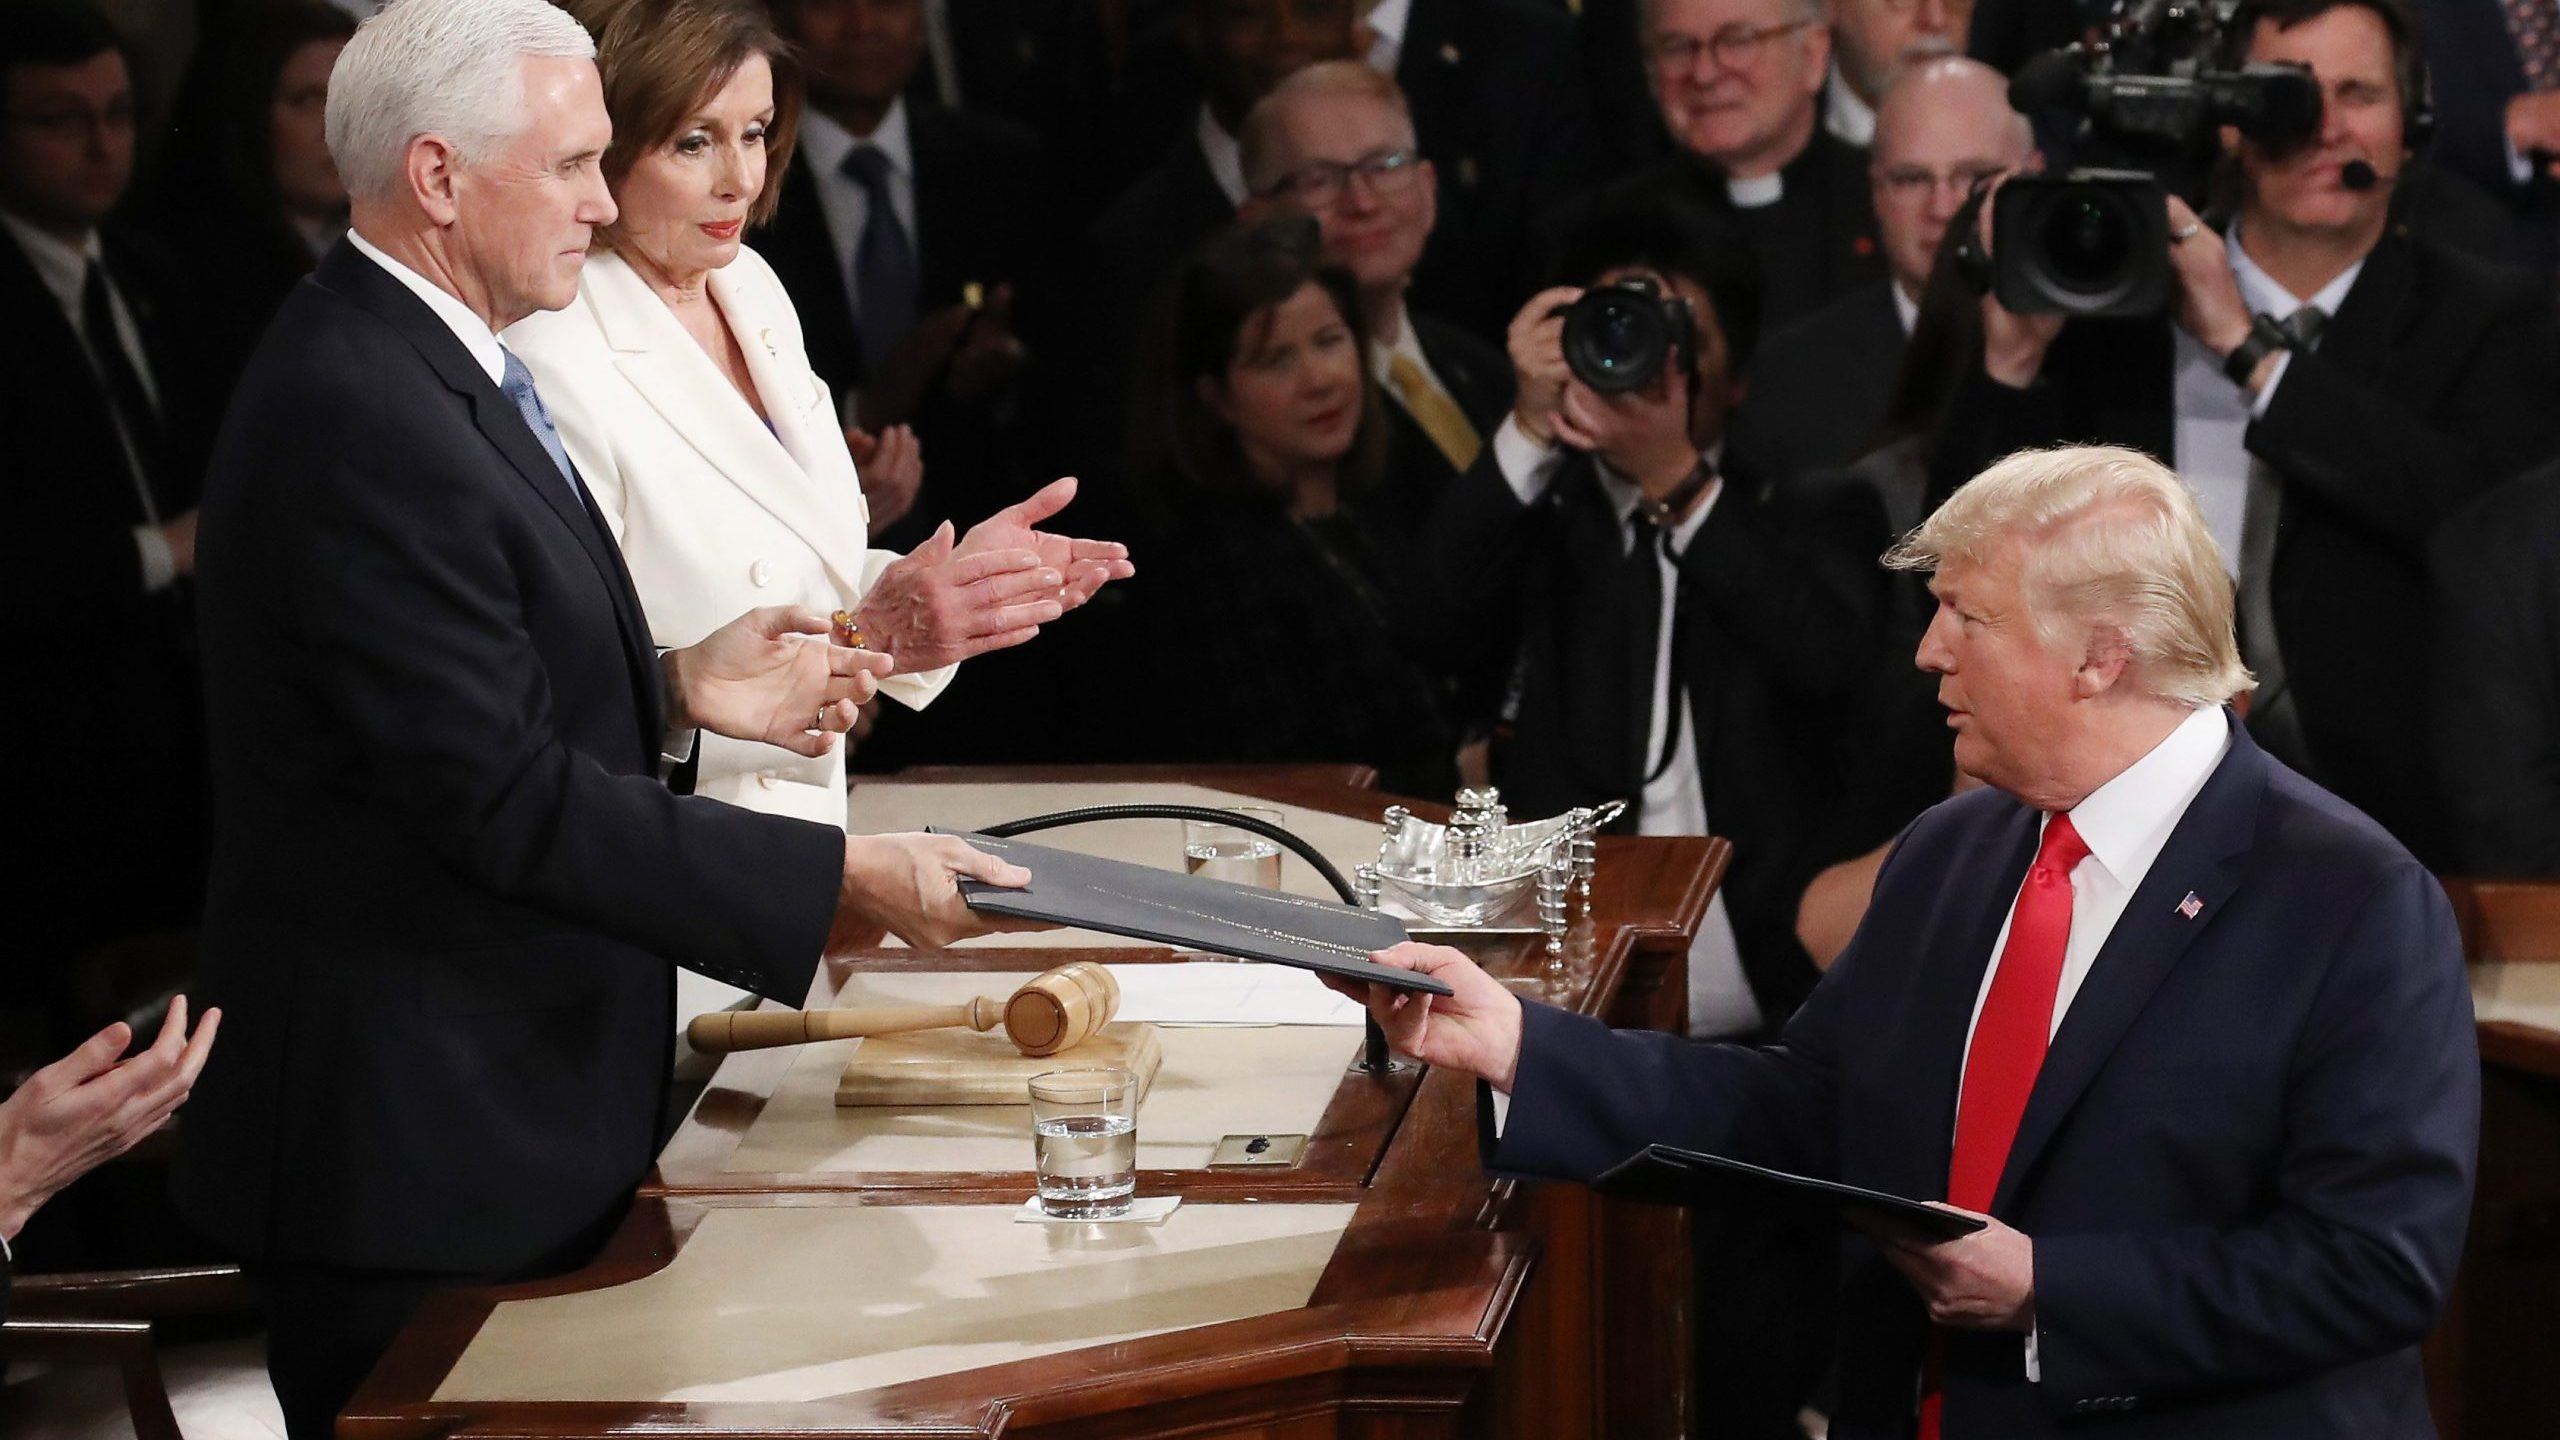 President Donald Trump hands Vice President Mike Pence a copy of his State of the Union speech before the address on Feb. 4, 2020. (Credit: Drew Angerer / Getty Images)